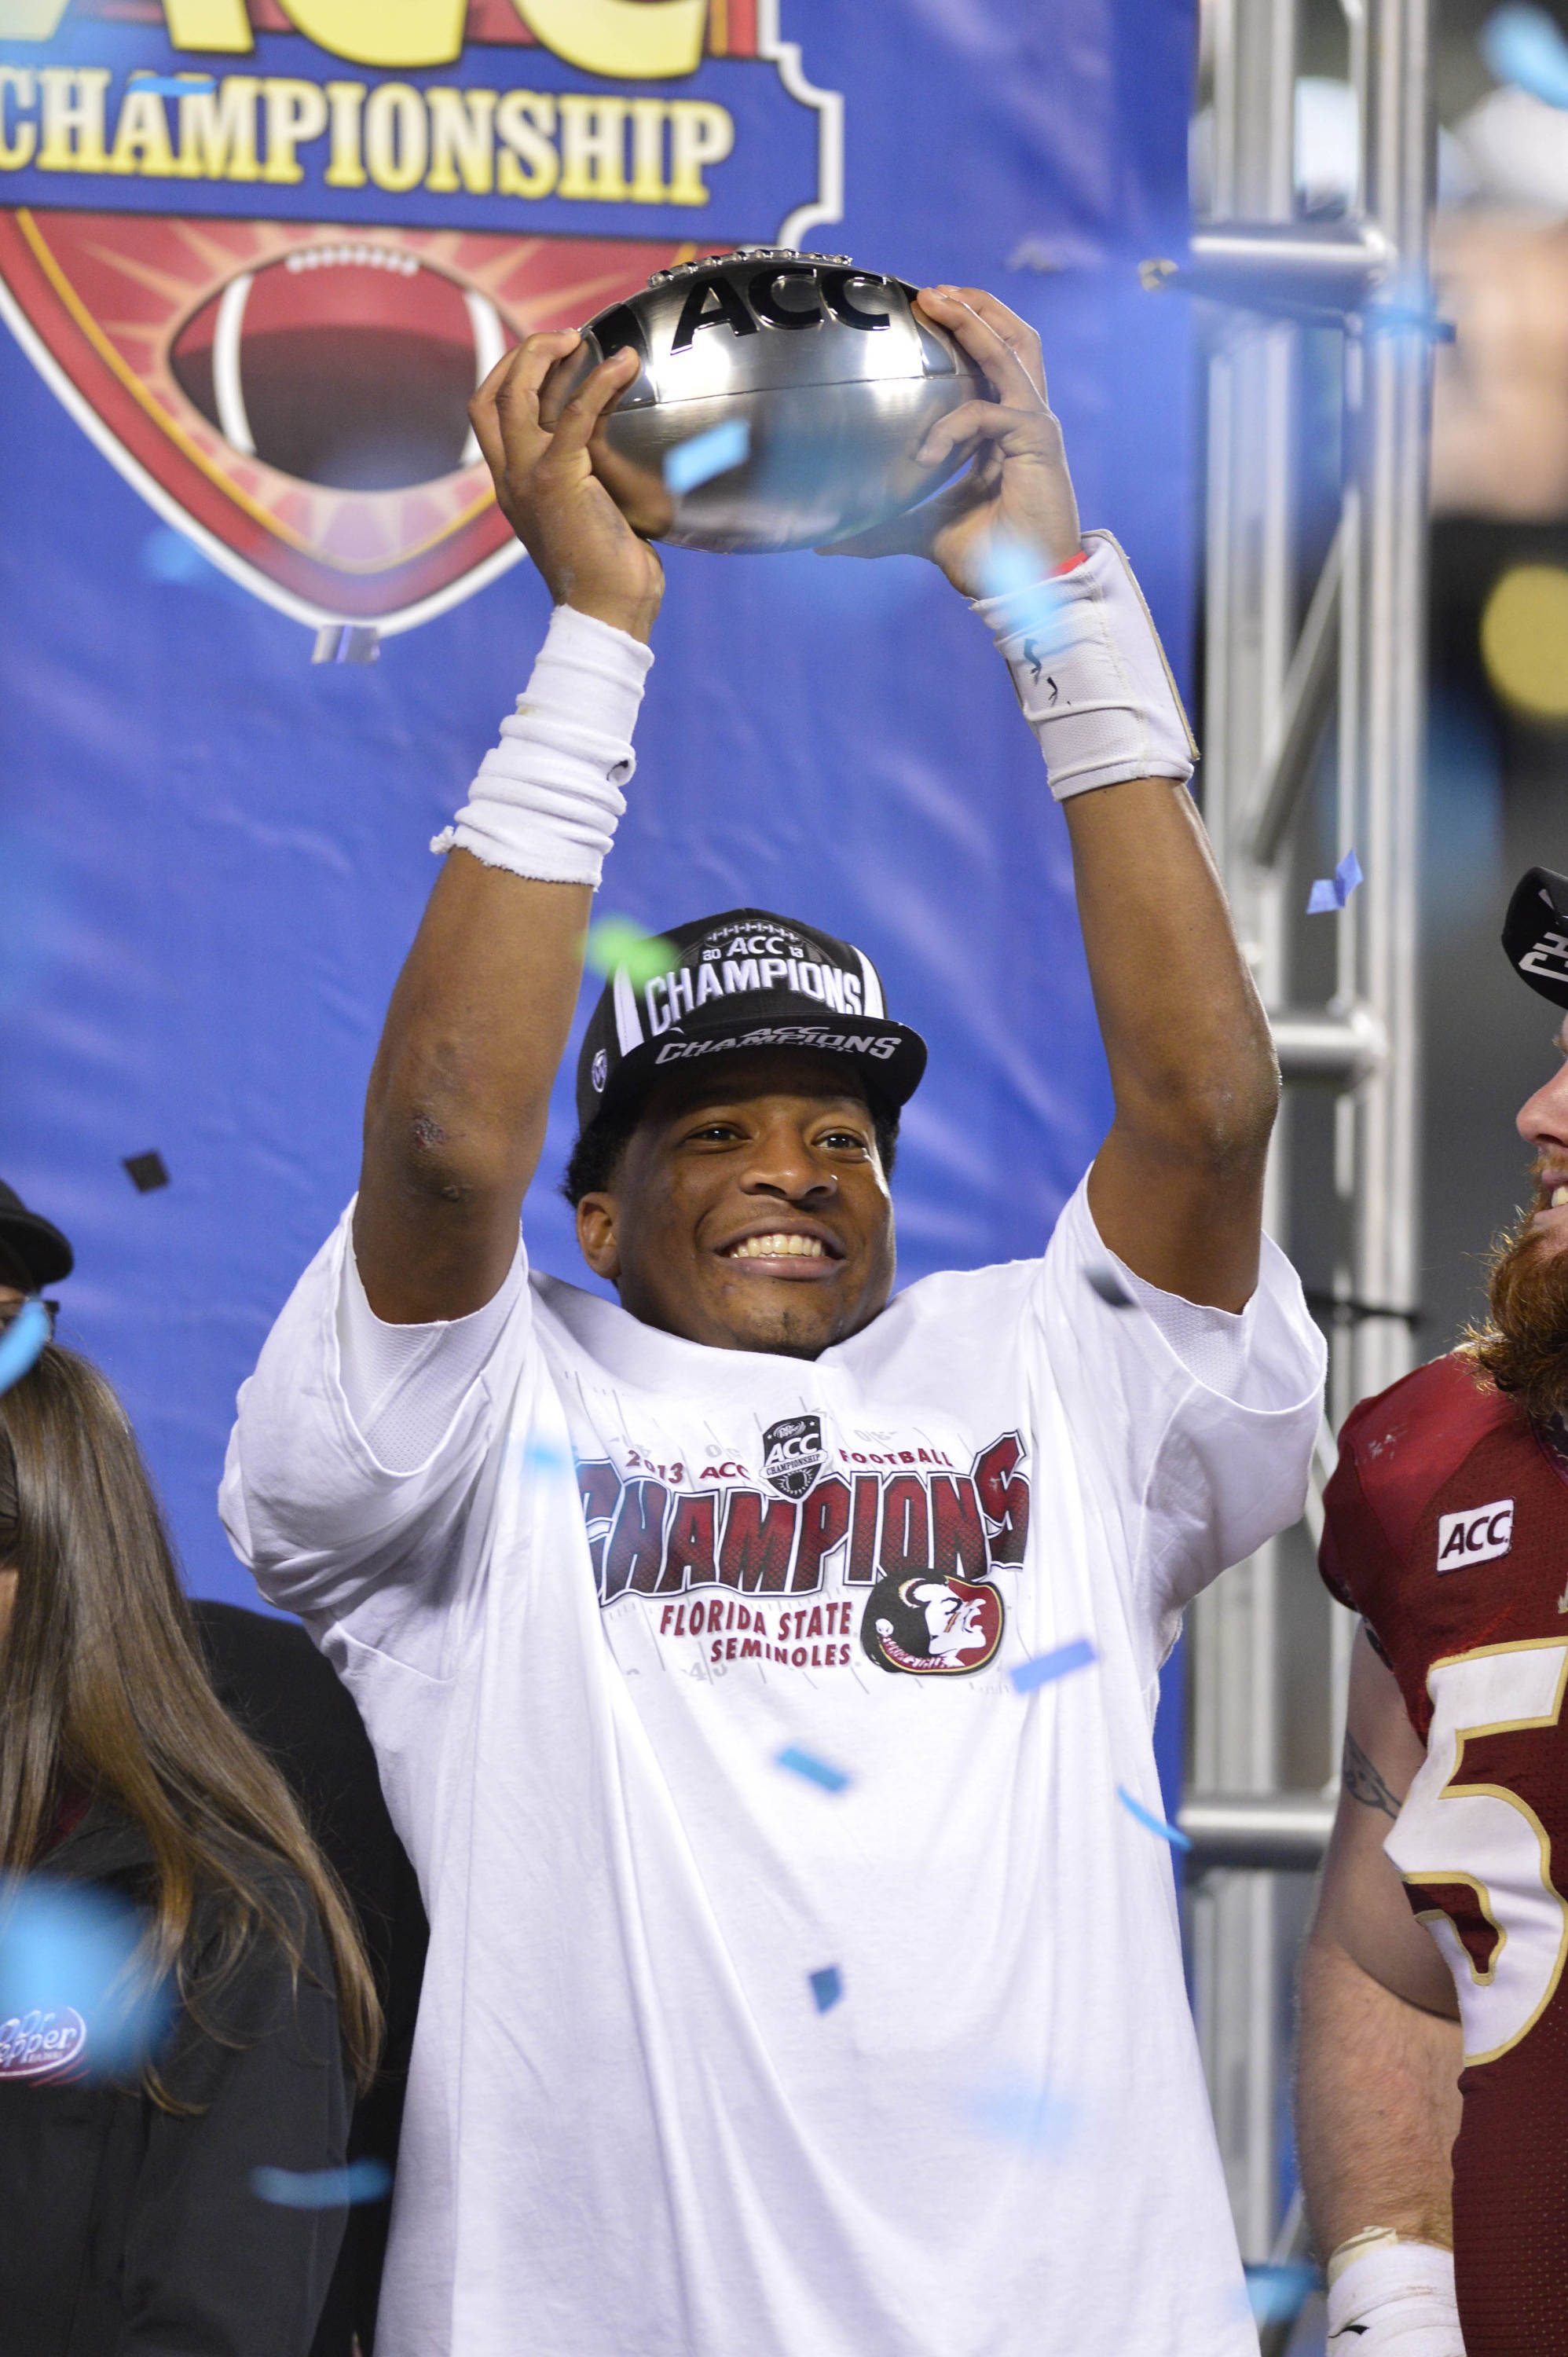 Dec 7, 2013; Charlotte, NC, USA; Florida State Seminoles quarterback Jameis Winston (5) holds up the ACC Championship trophy. The Seminoles defeated the Blue Devils 45-7 at Bank of America Stadium. Mandatory Credit: Bob Donnan-USA TODAY Sports